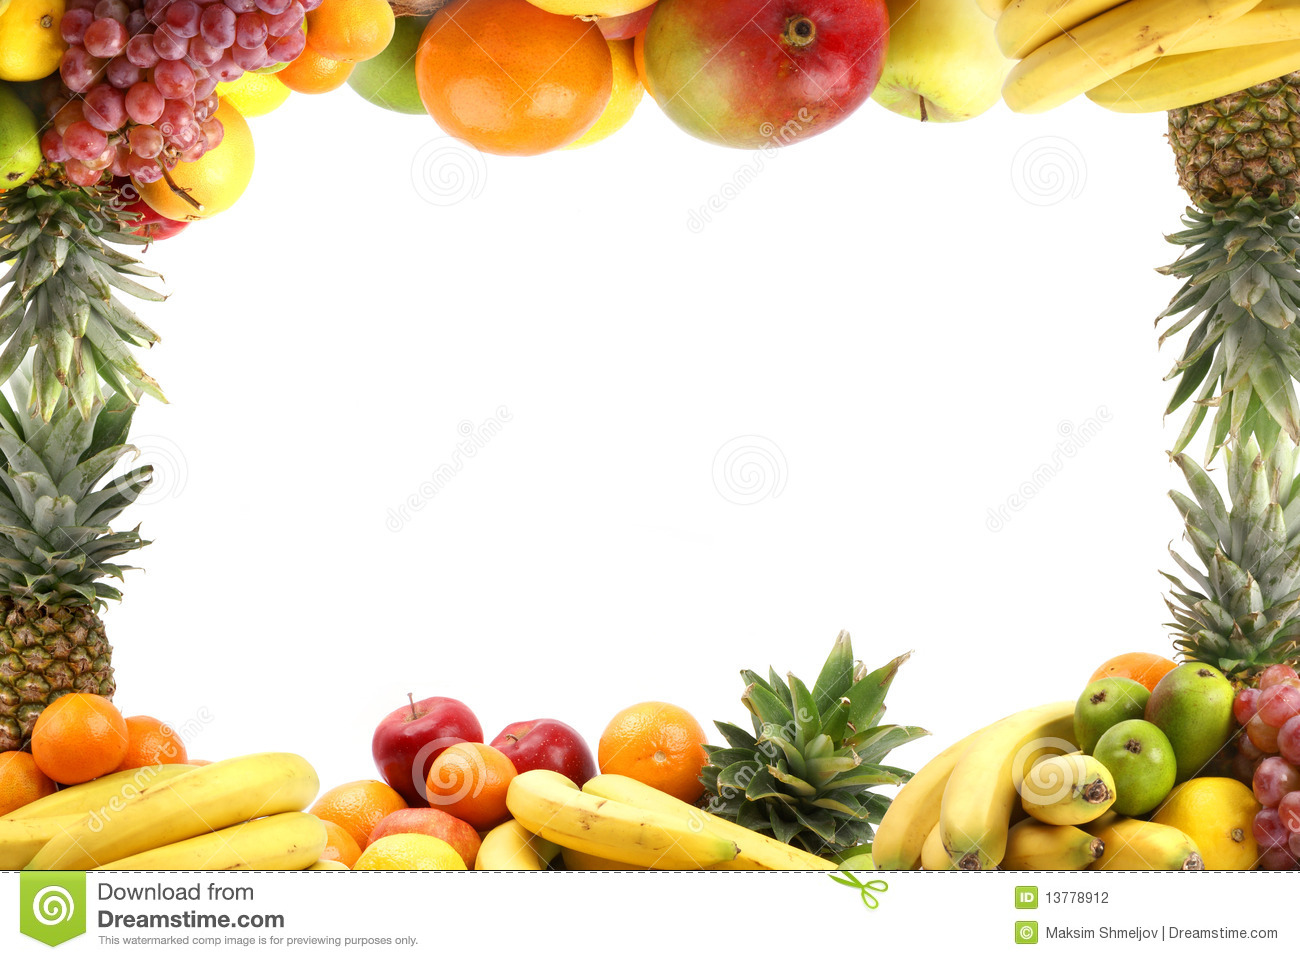 Autumn Tree Leaf Fall Animated Wallpaper Different Types Of Healthy Fruits Stock Photo Image Of